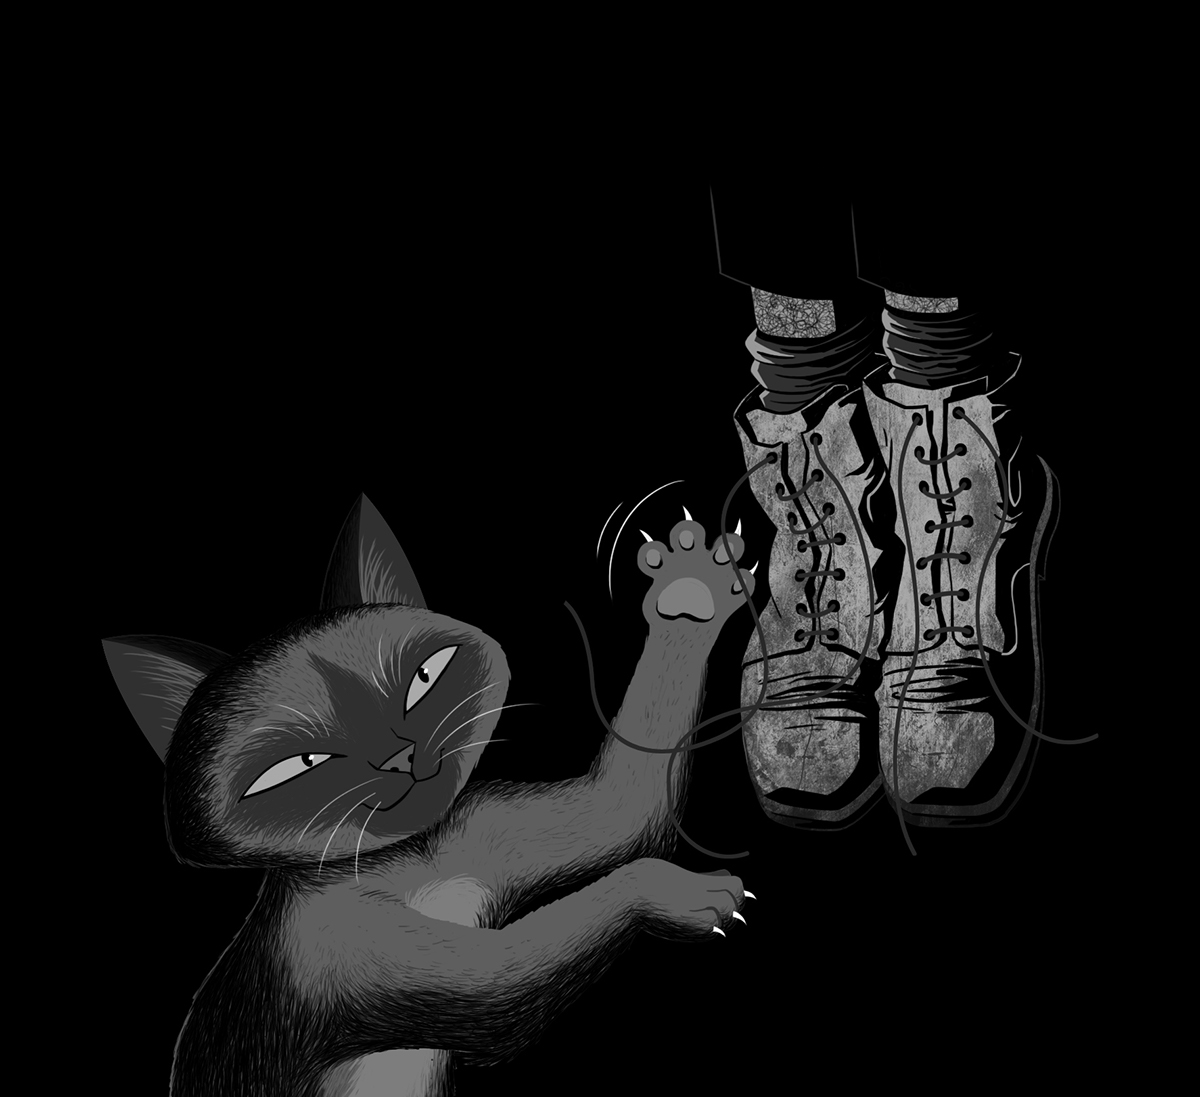 Picture book cats ink horror black & white lighting characters book cover cover editorial cover design comic dark literature sketches